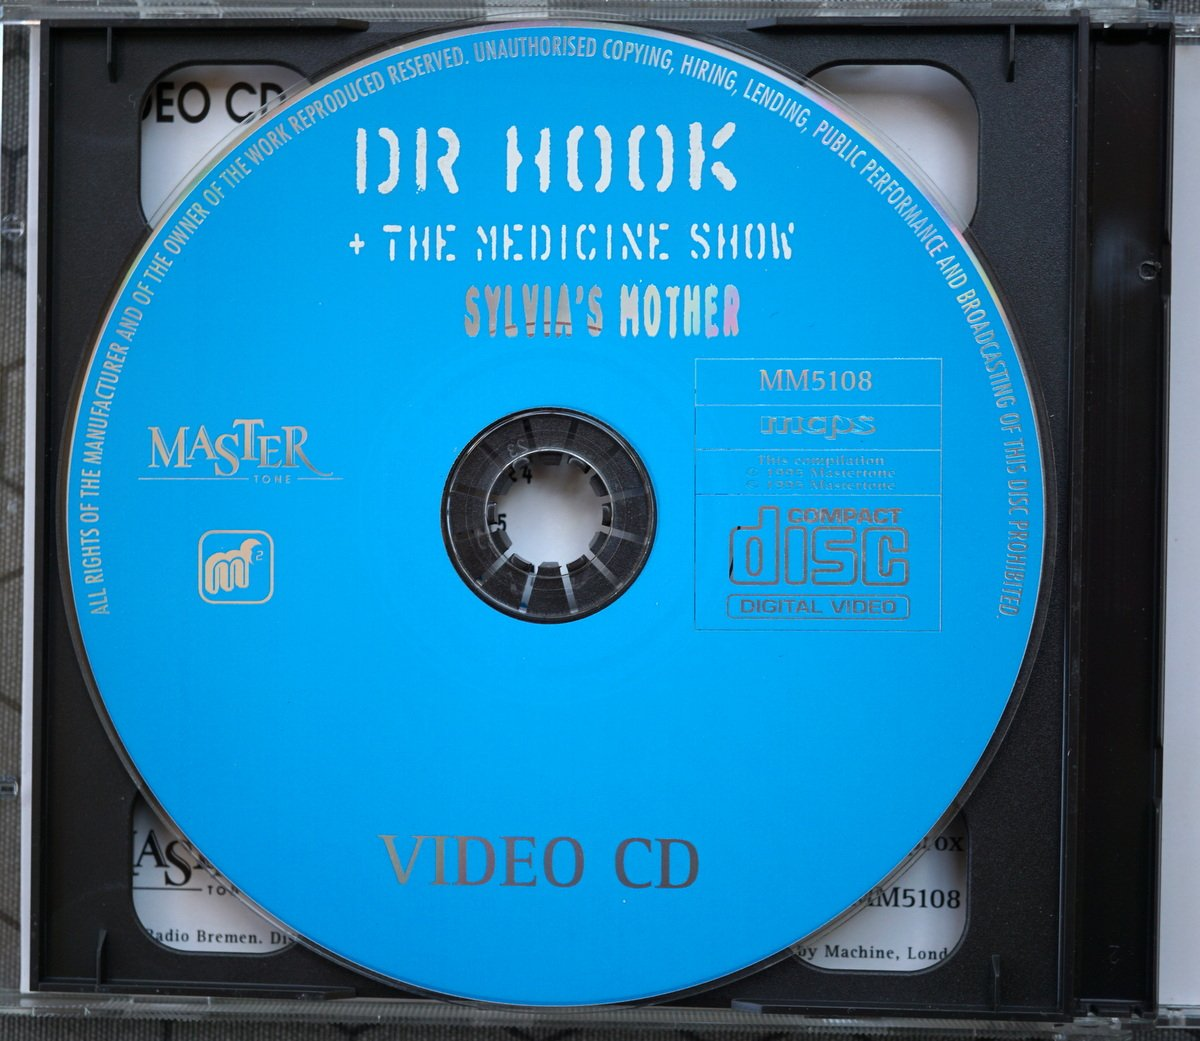 P DVD - MasterTome MM5108 - Dr Hook Silvias Mother - UK - 1995 - 2